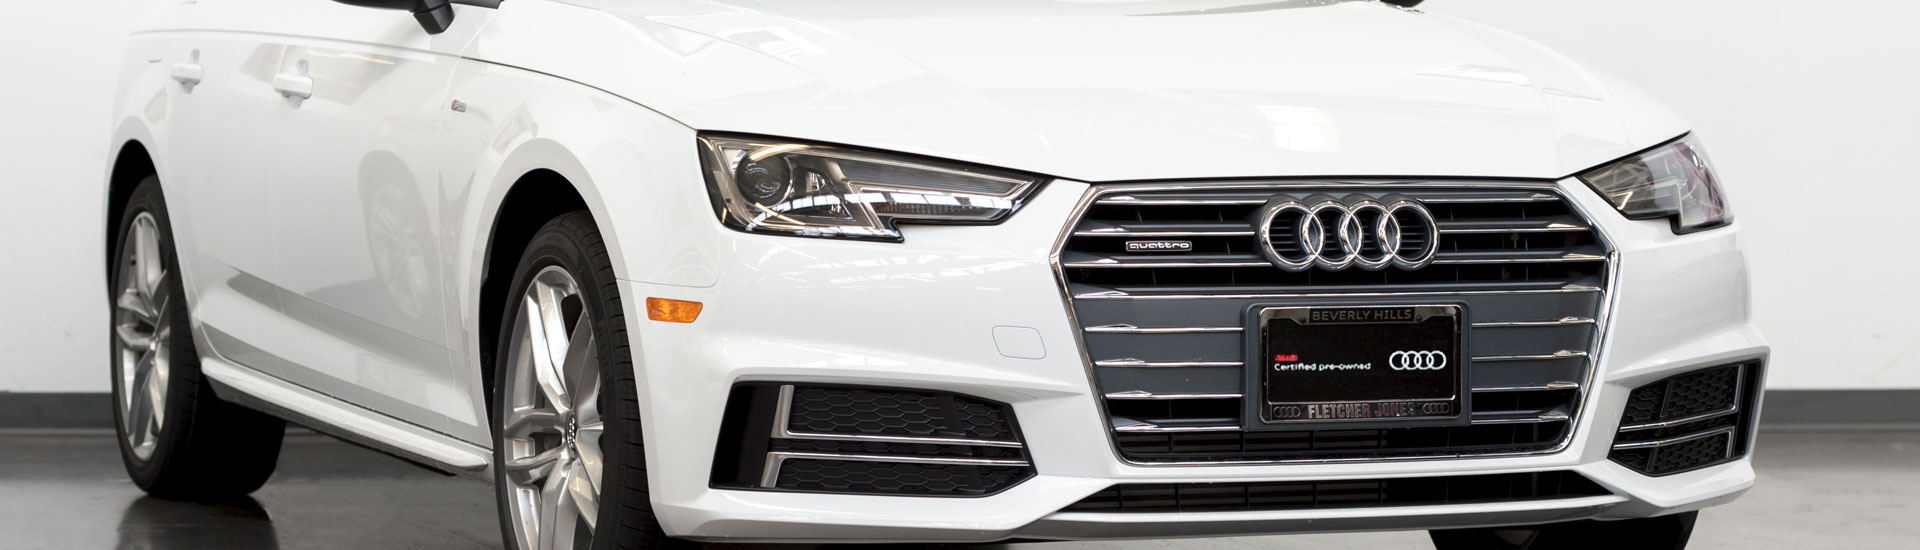 Audi Paint Protection Kits